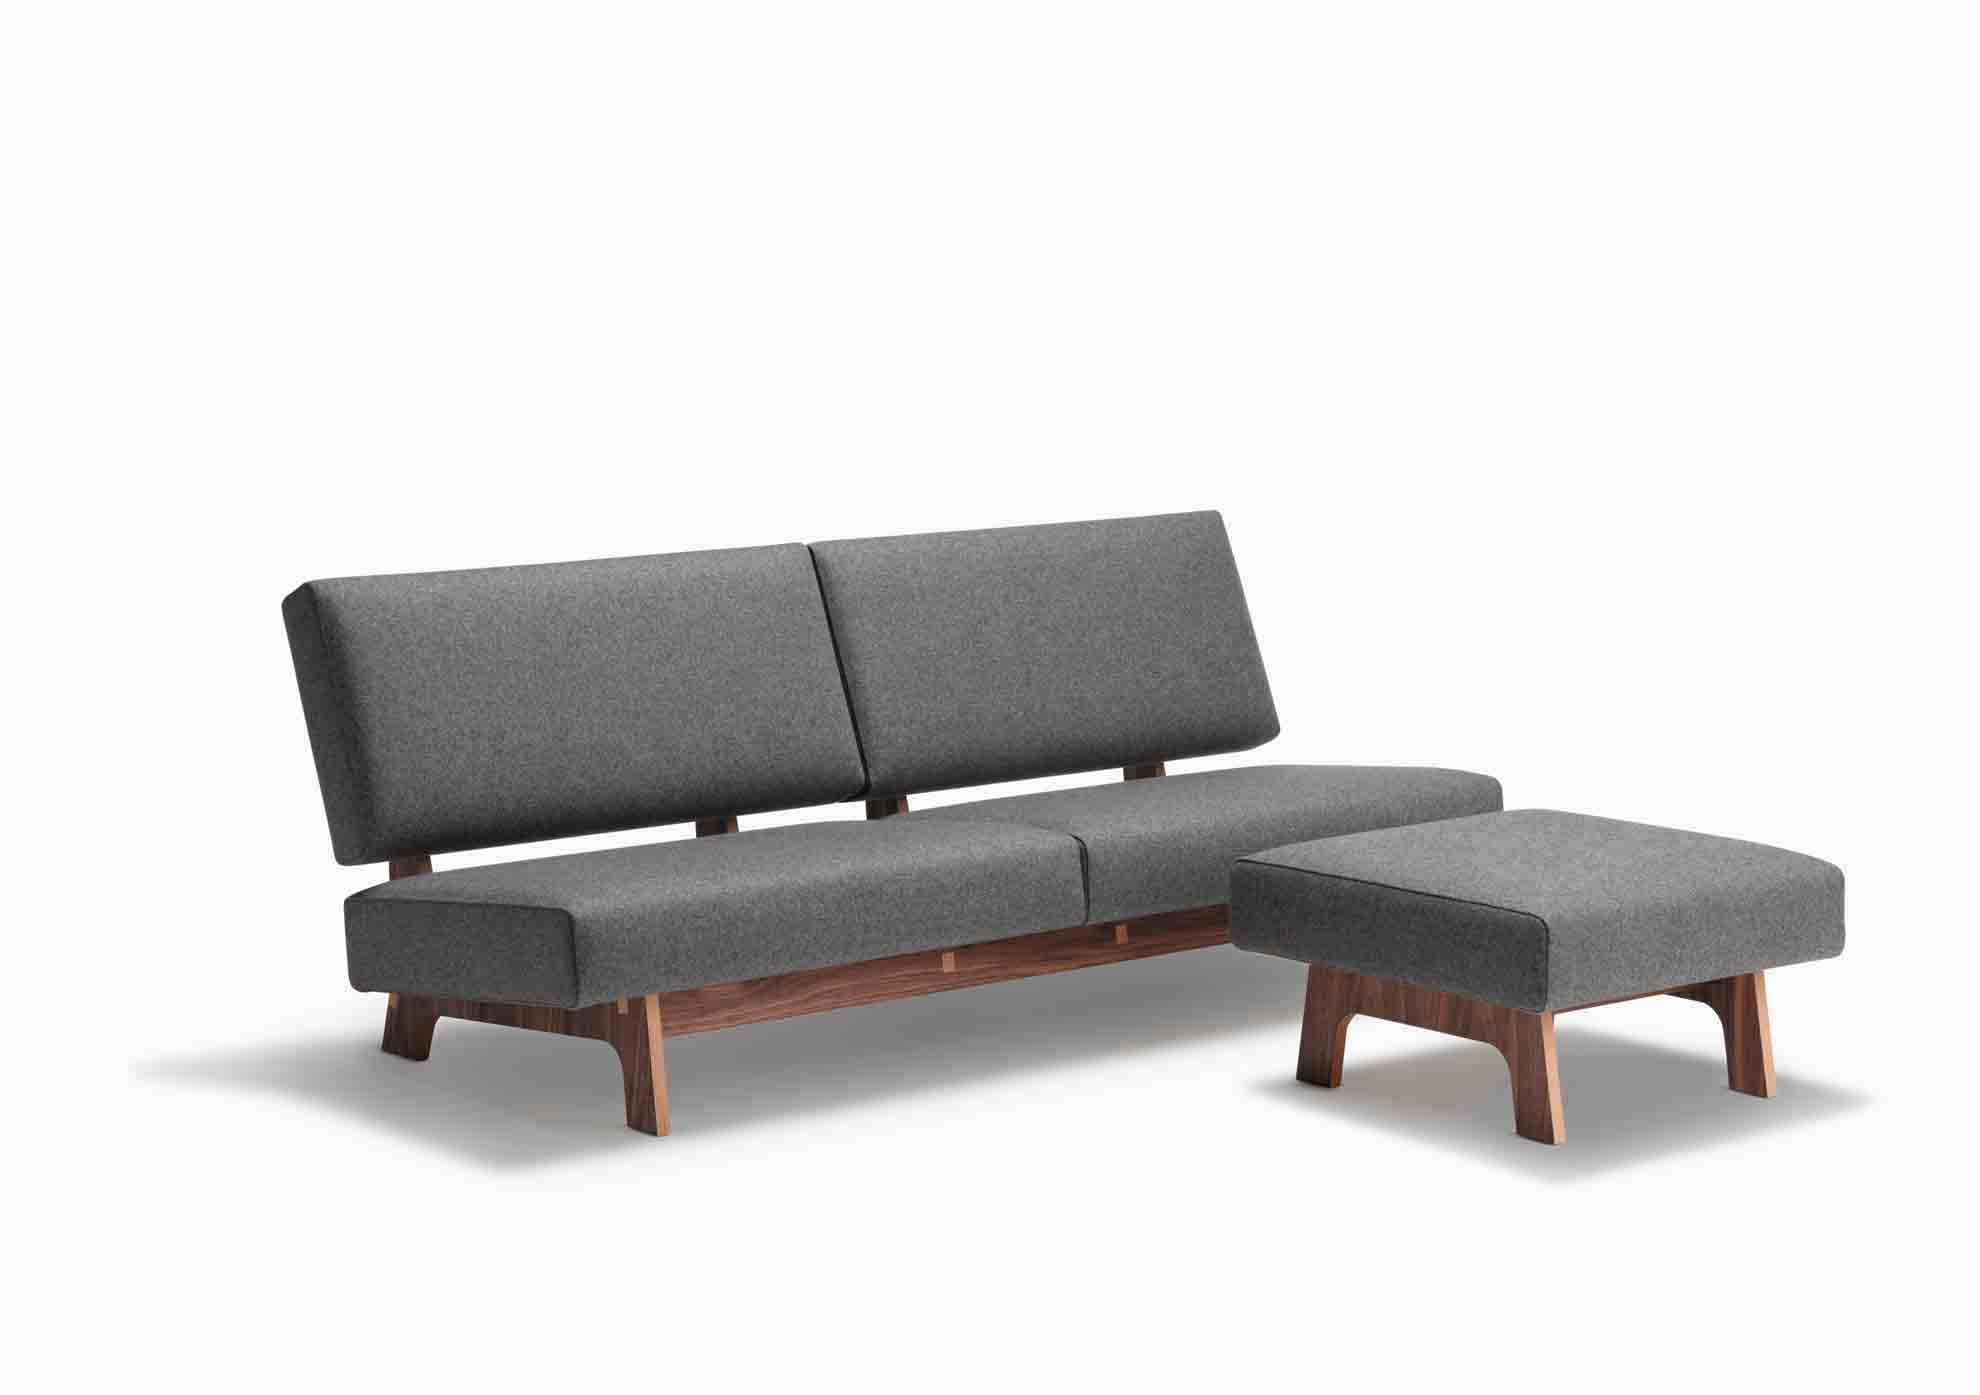 Cool Sofa Und Ottoman Mohr Polster Pabps2019 Chair Design Images Pabps2019Com